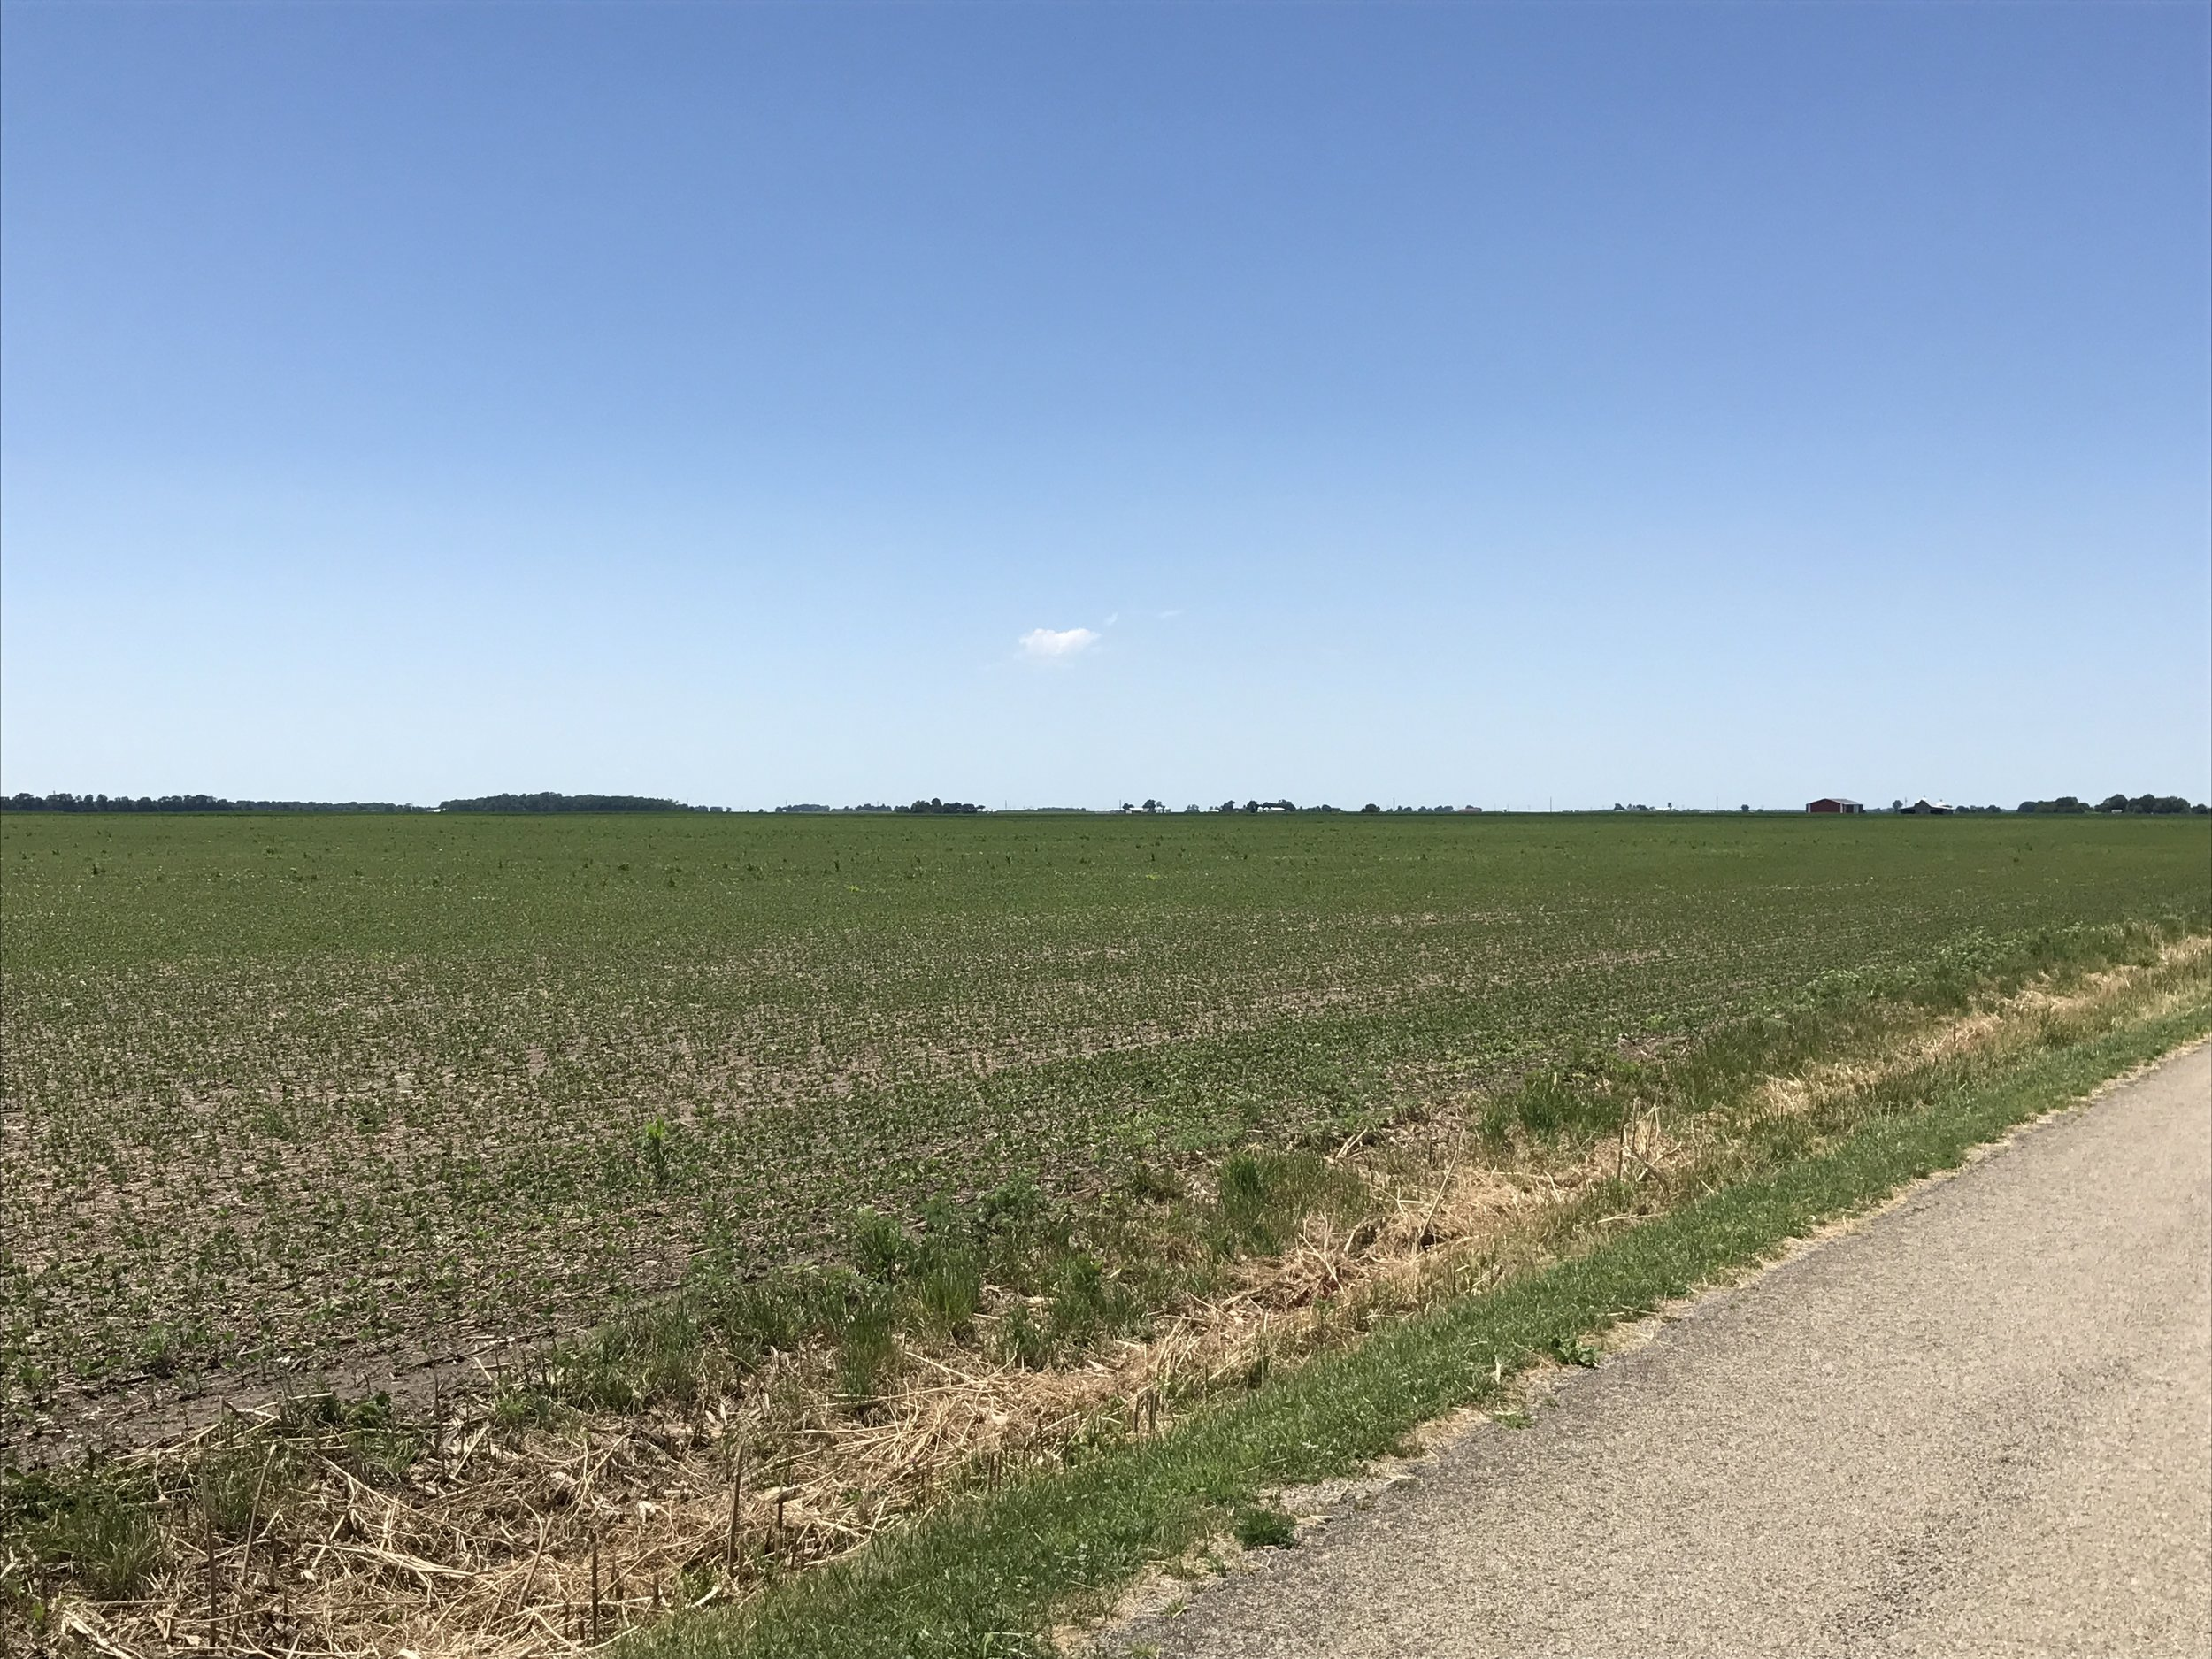 North side of the Kansas 150 Farm from the northeast corner looking southwest.